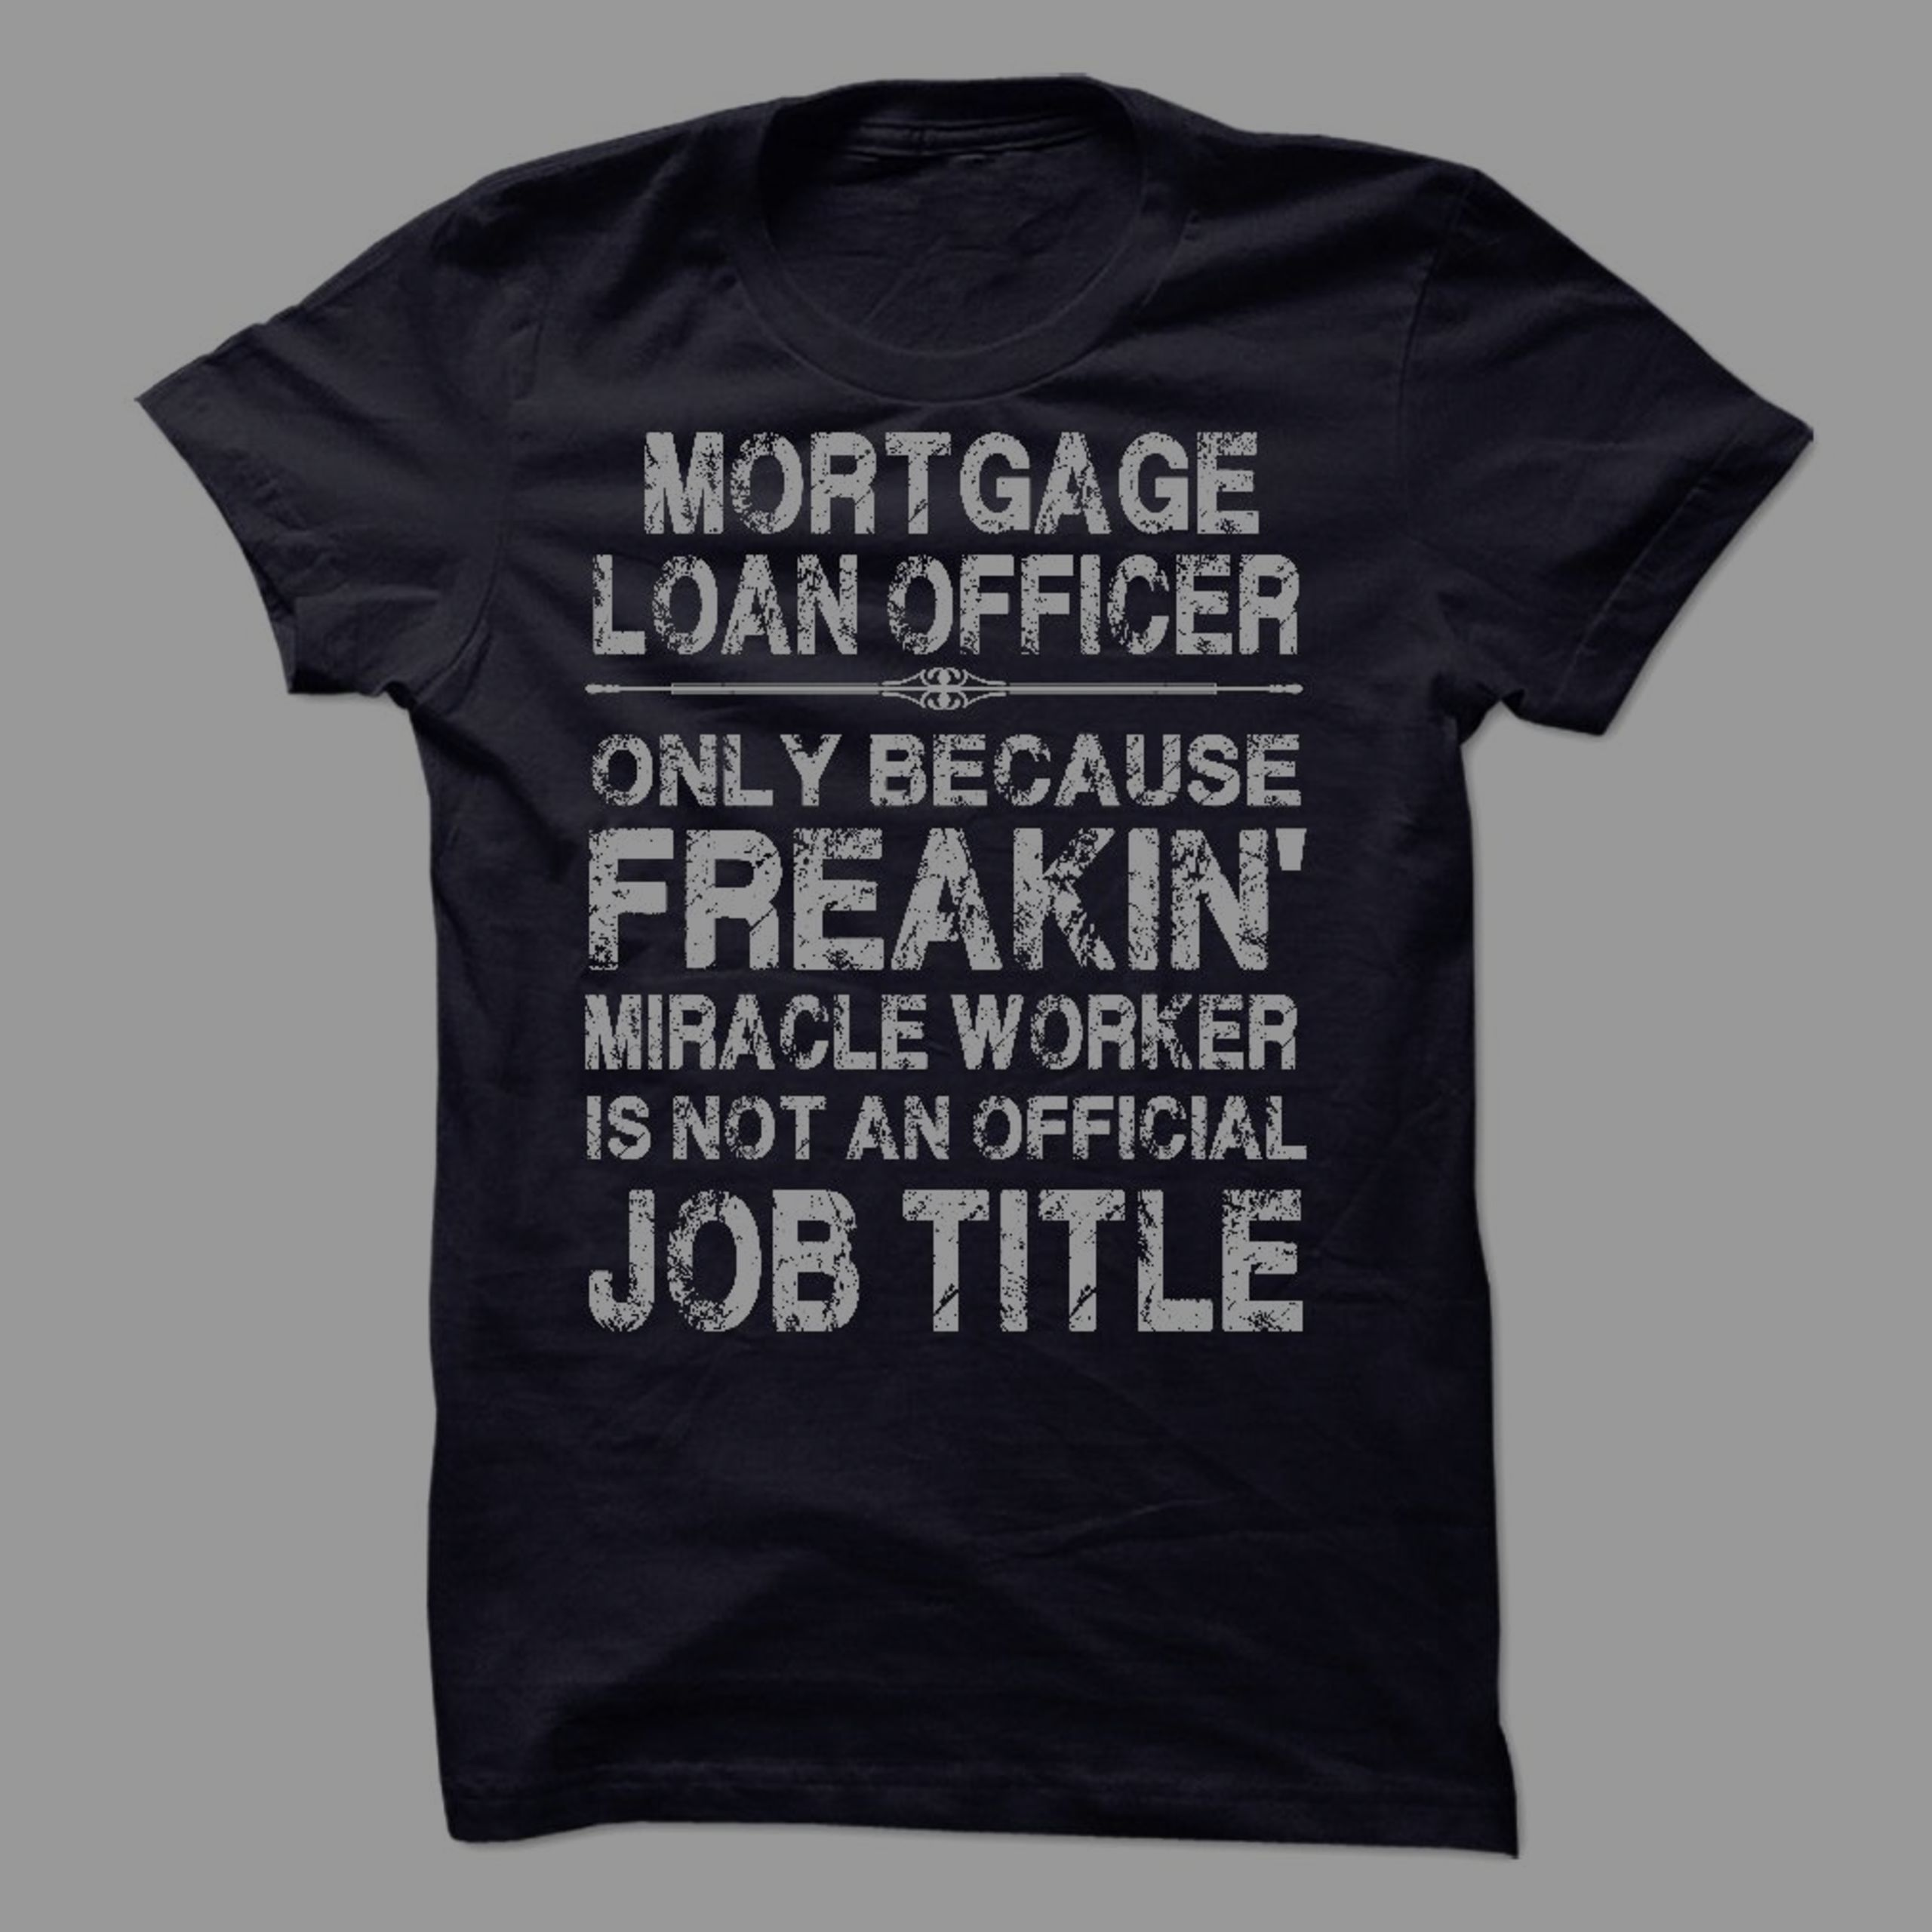 The Top 5 Things to Look for in a Mortgage Professional